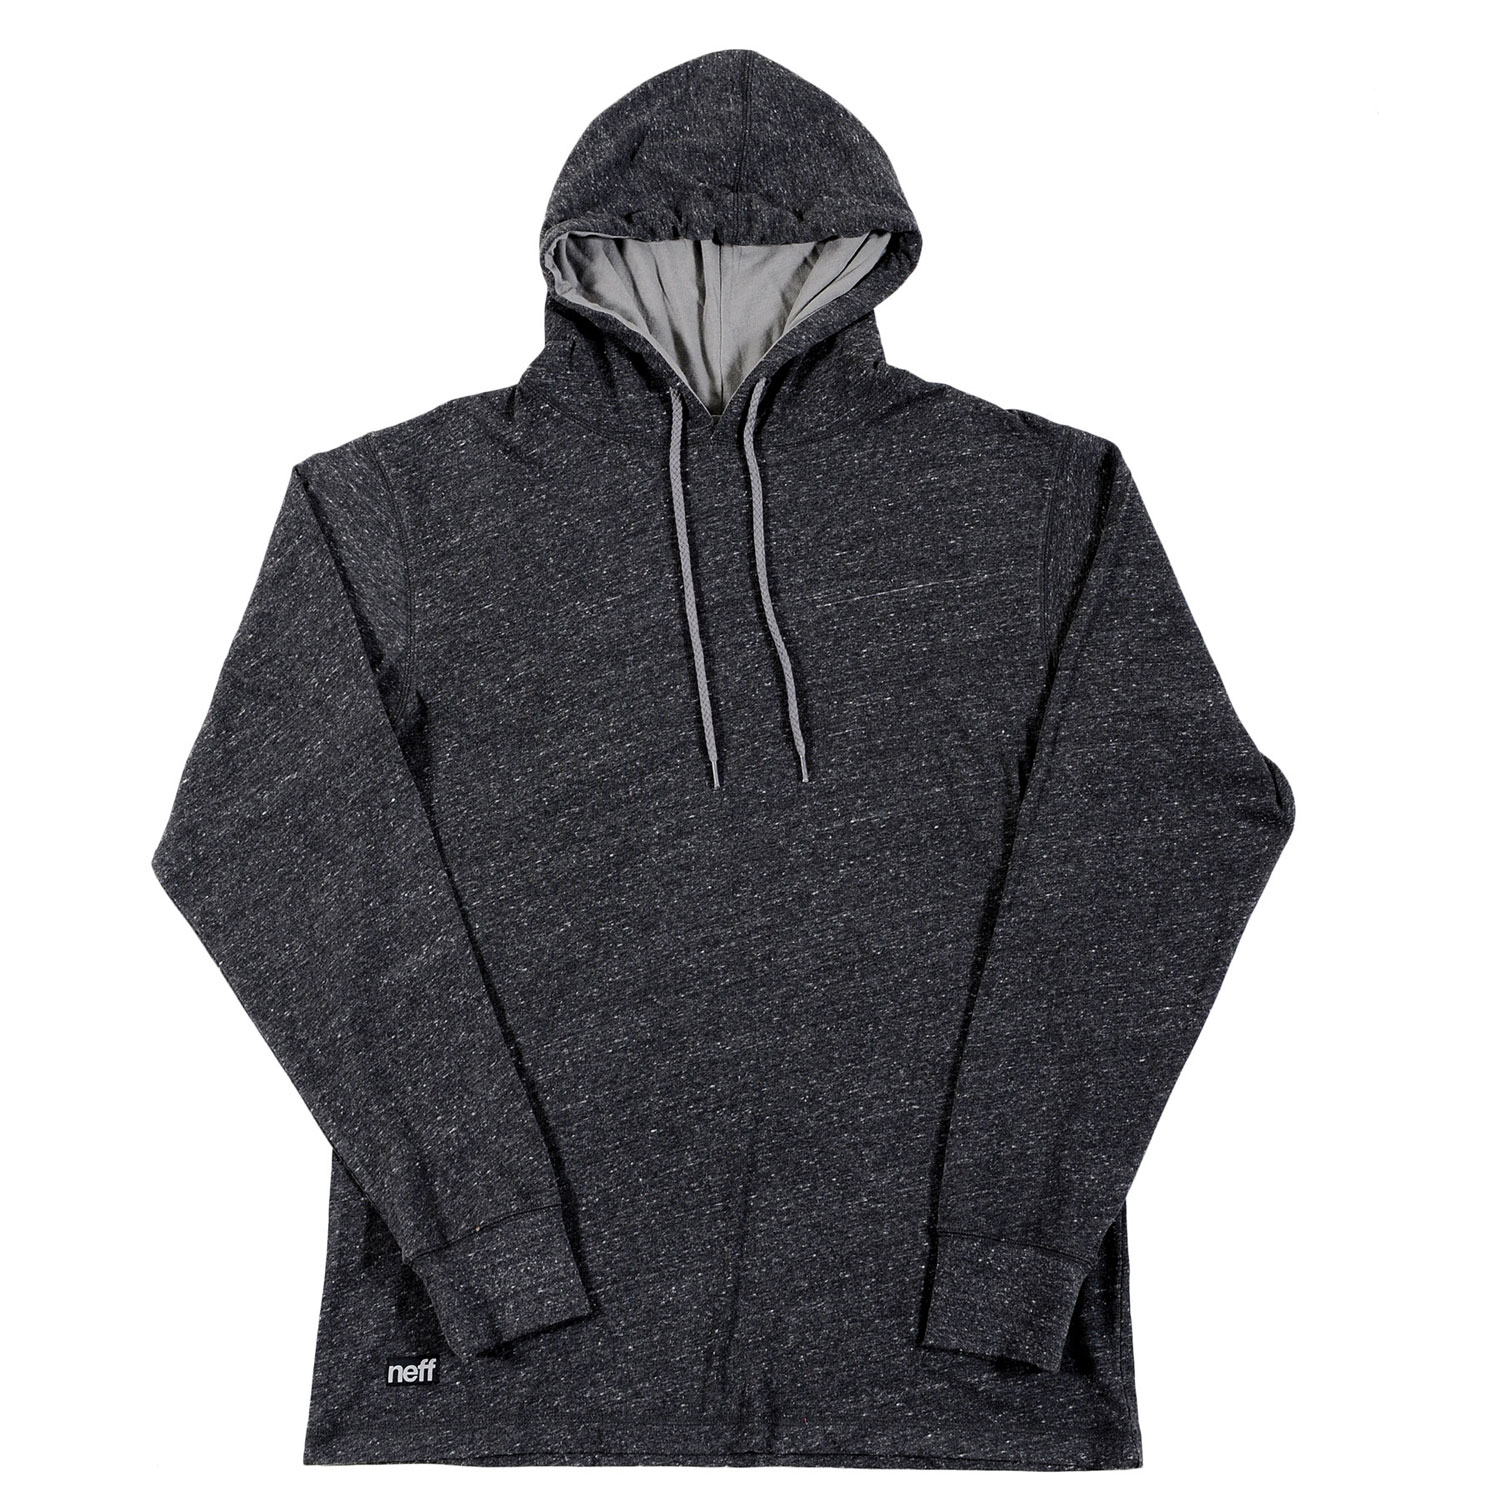 Skateboard Key Features of the Neff Andre Hoodie: 50% Polyester, 25% Cotton, & 25% Rayon - $27.95